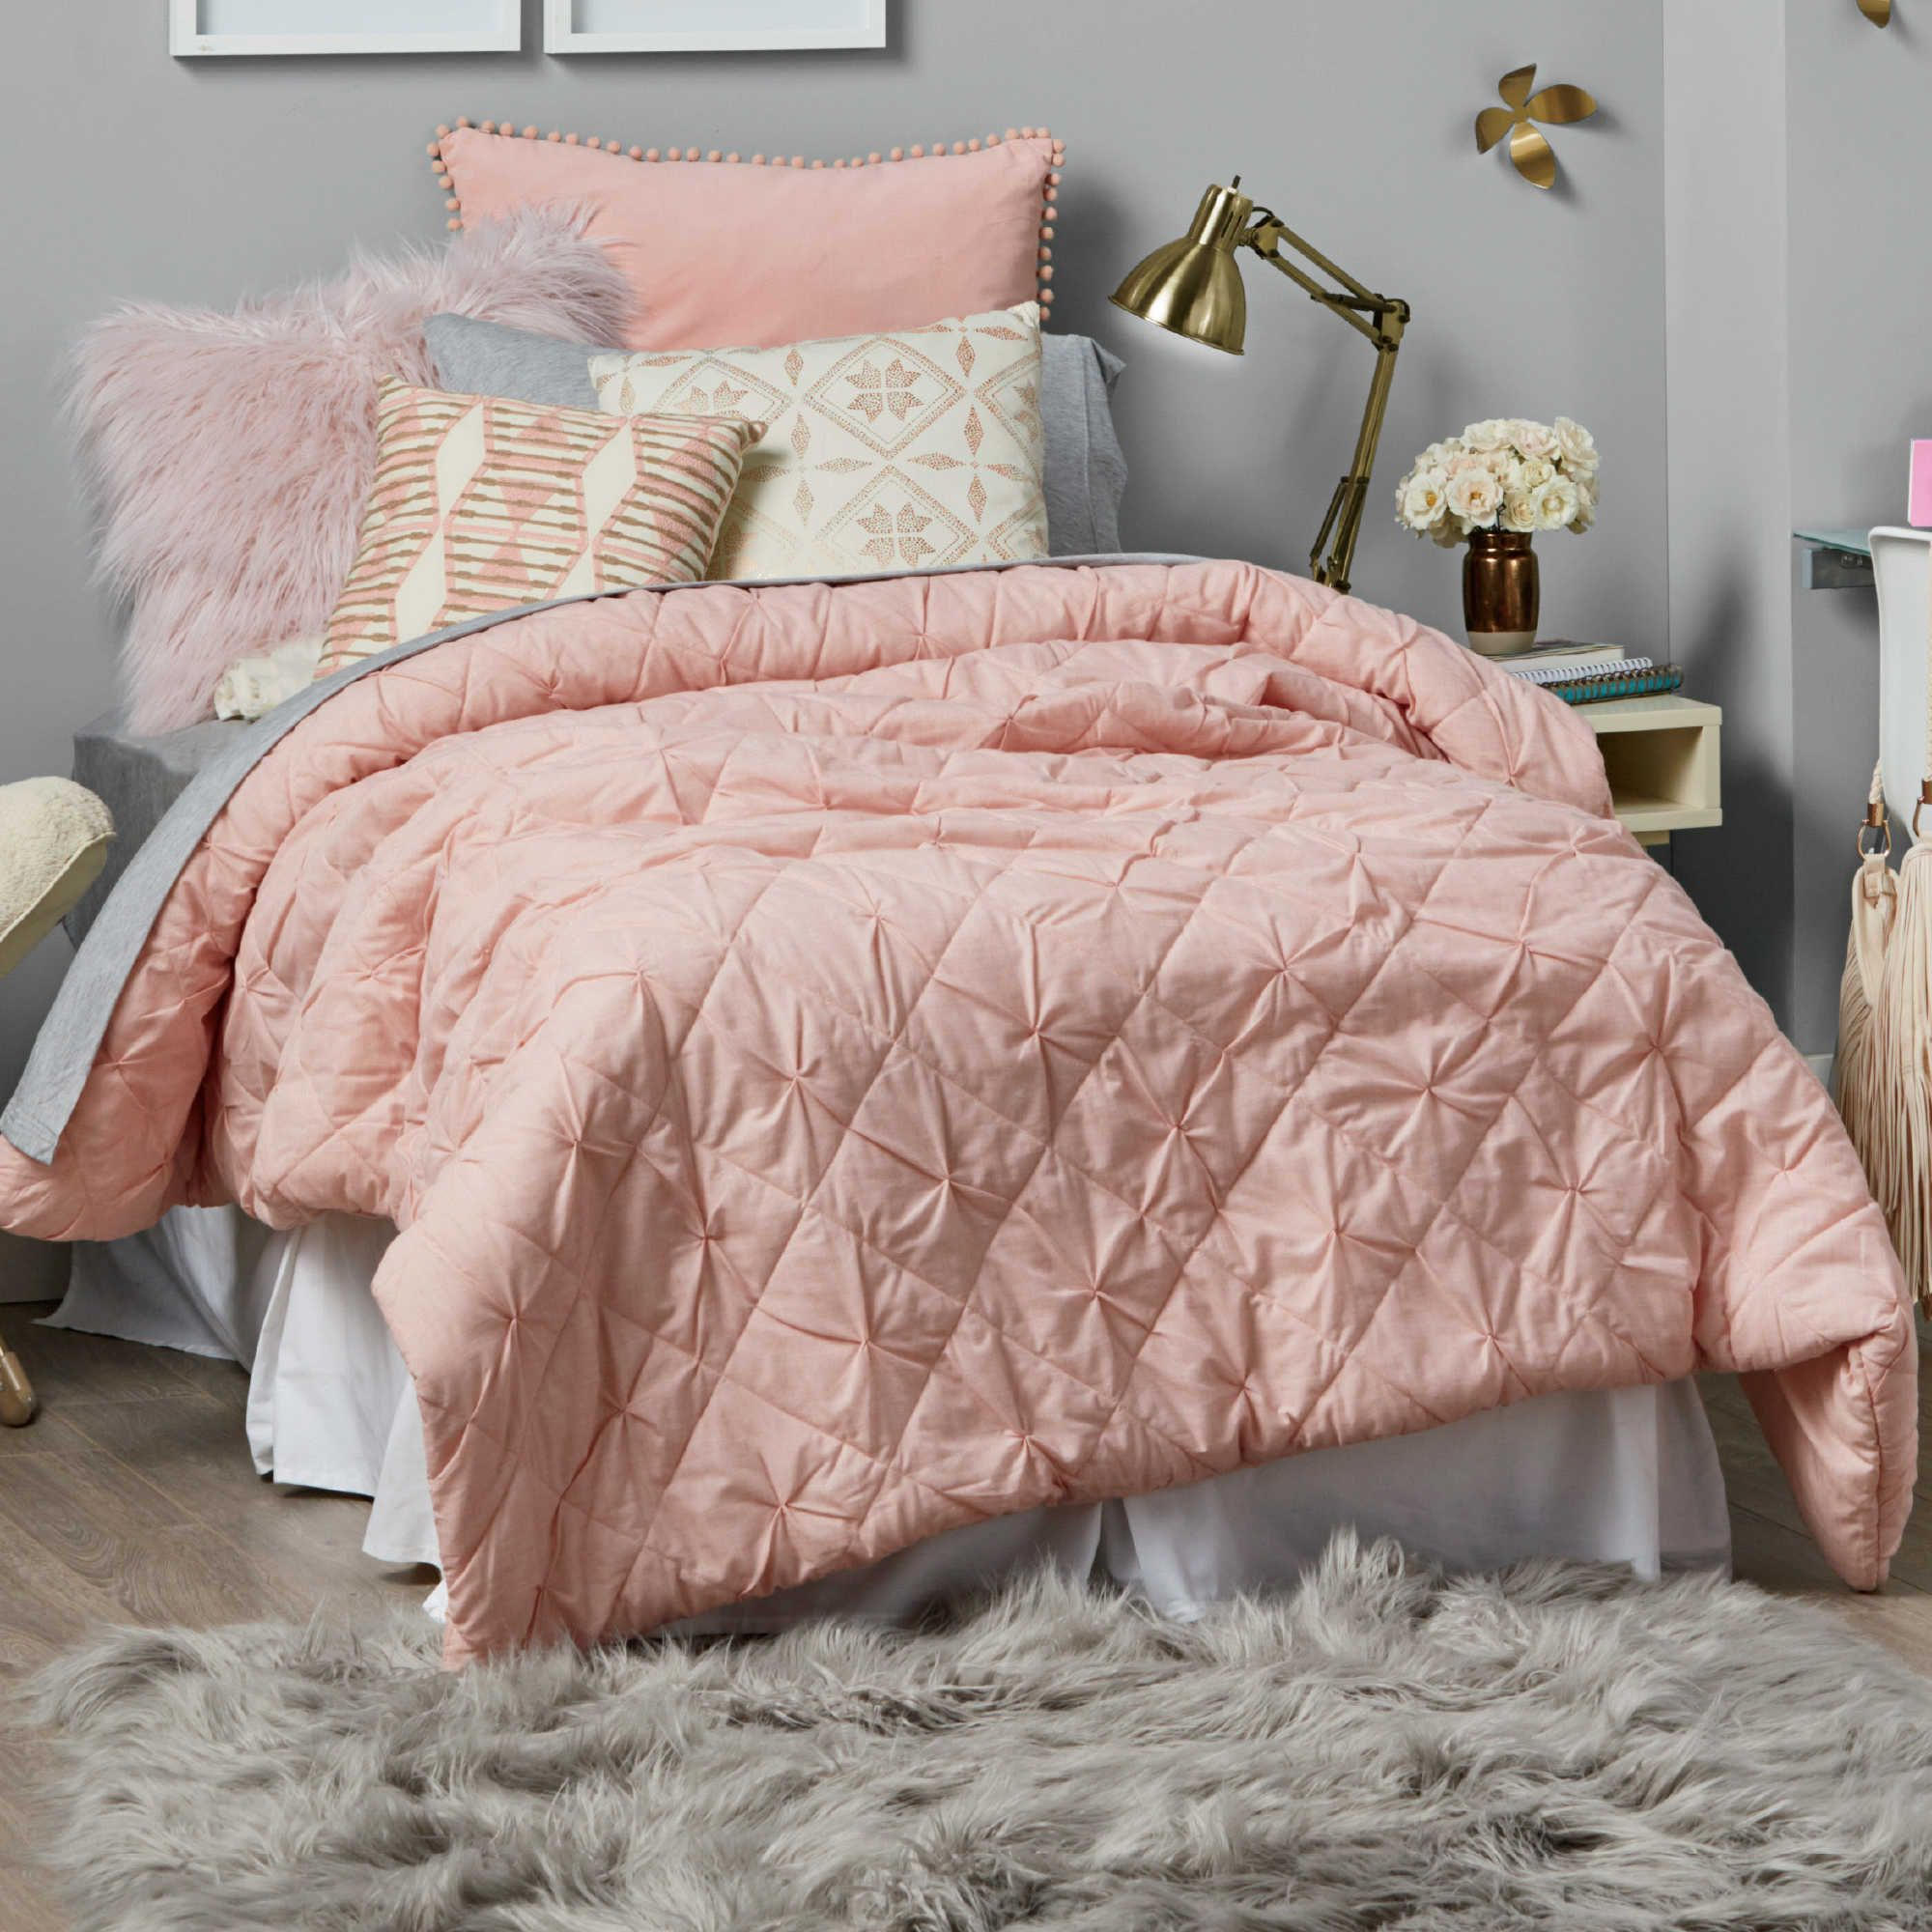 Anthology Mina Comforter Set Apartment Decor In 2019 Pinterest